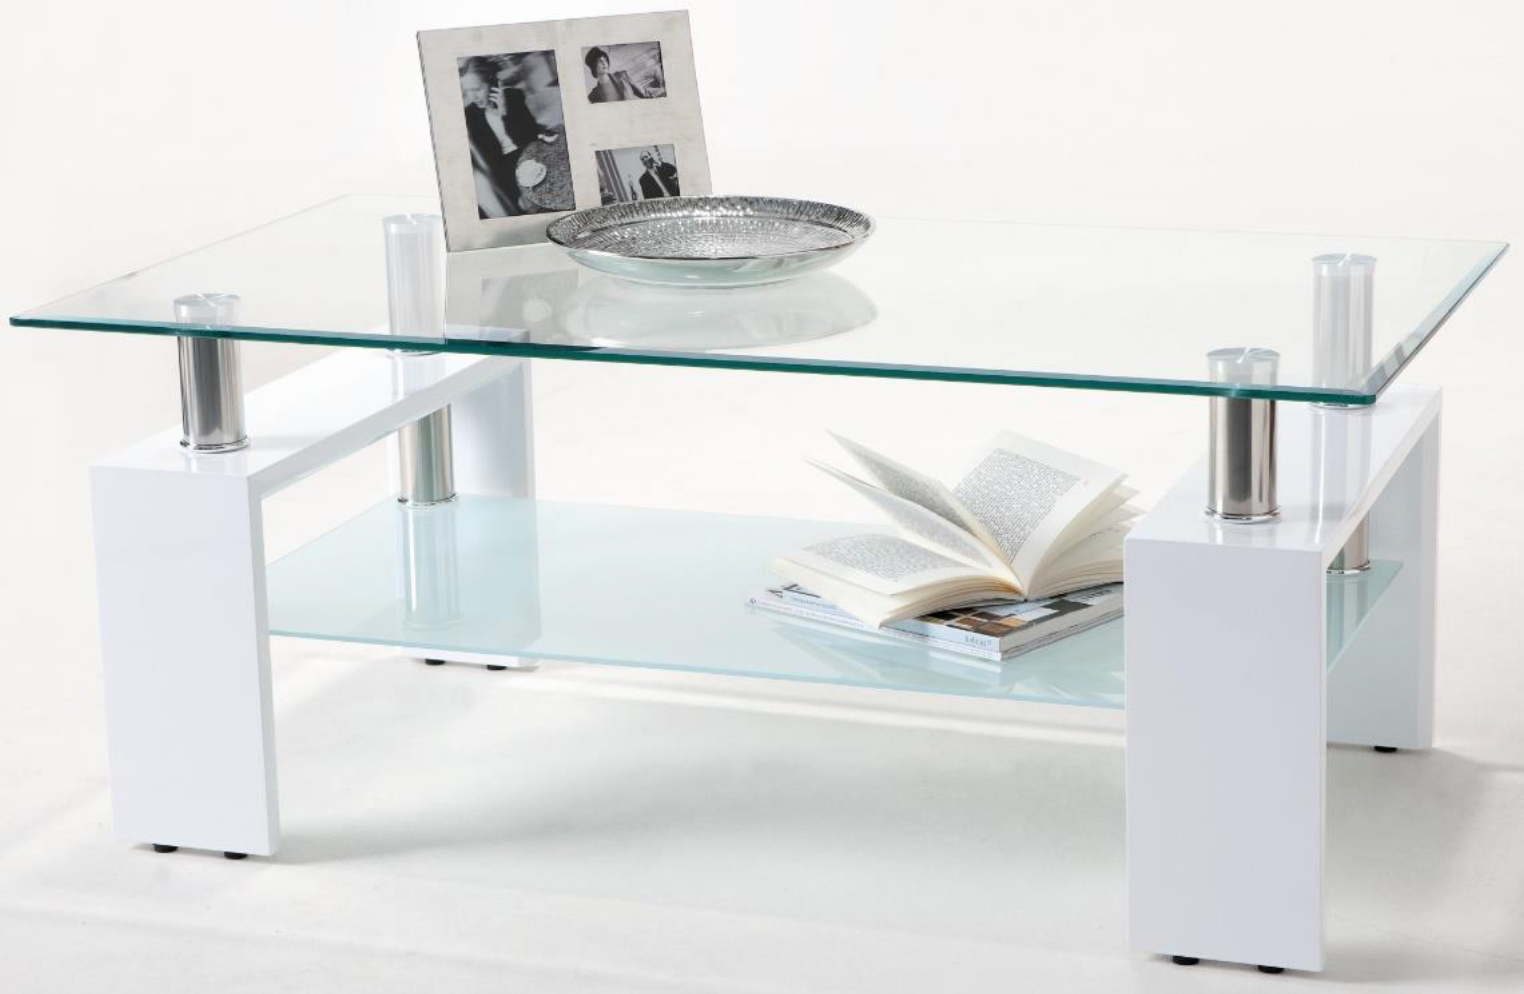 Table Basse Blanche Verre.Table Basse Verre Laque Blanc